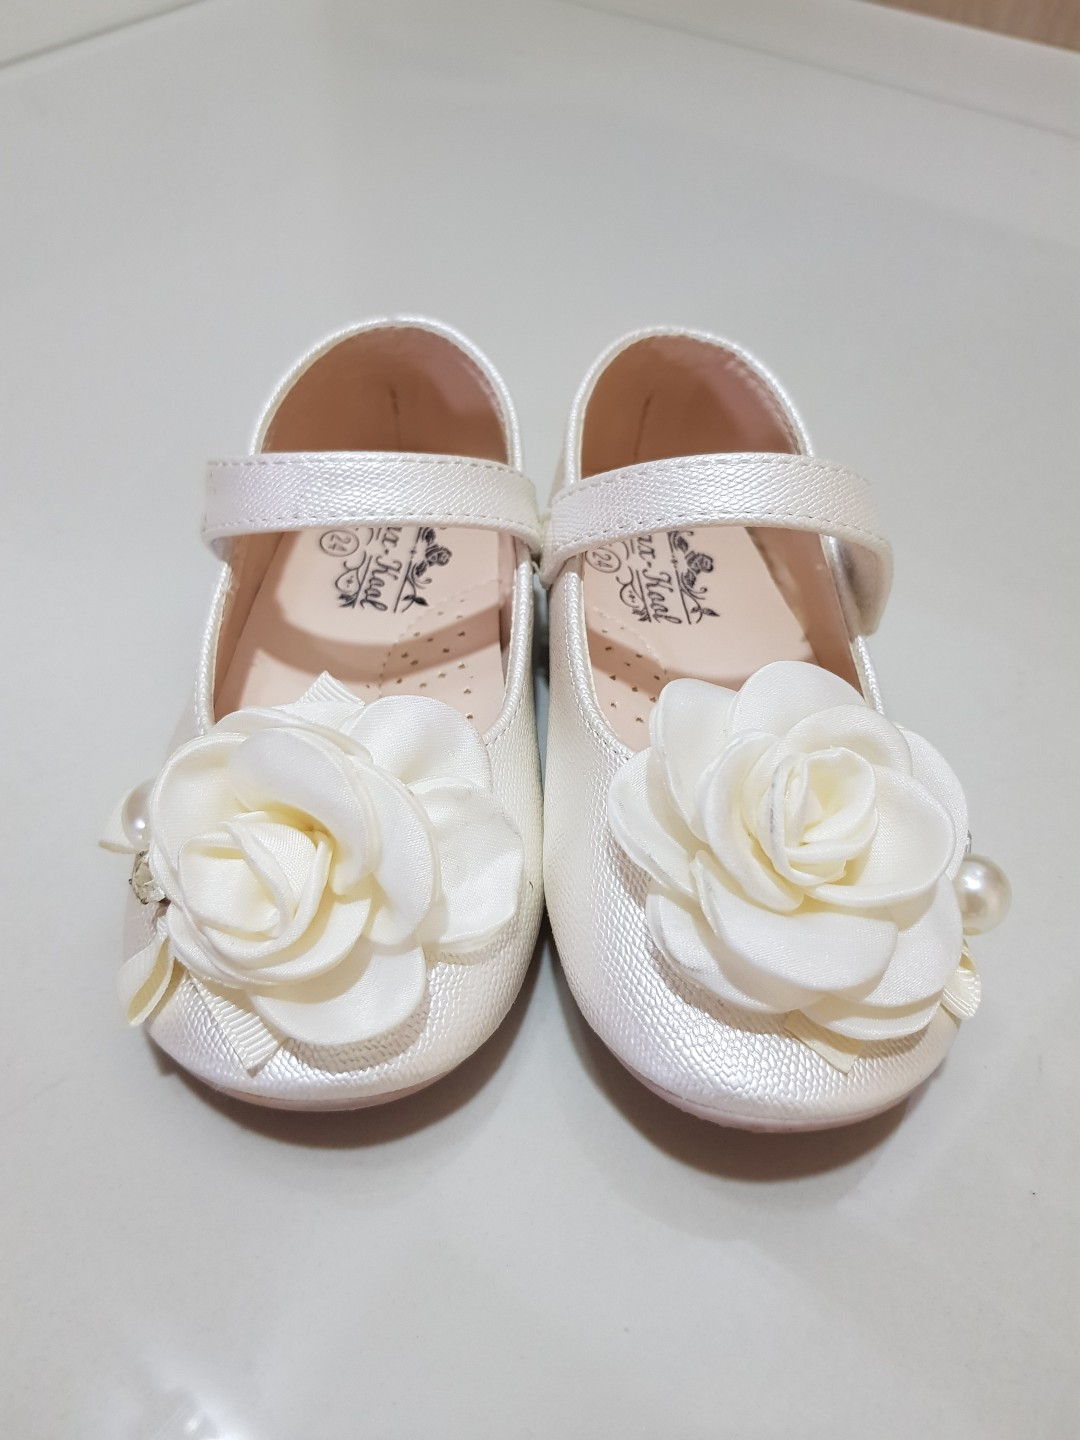 4a85b50bc65 Toddler girl wedding shoes size 24